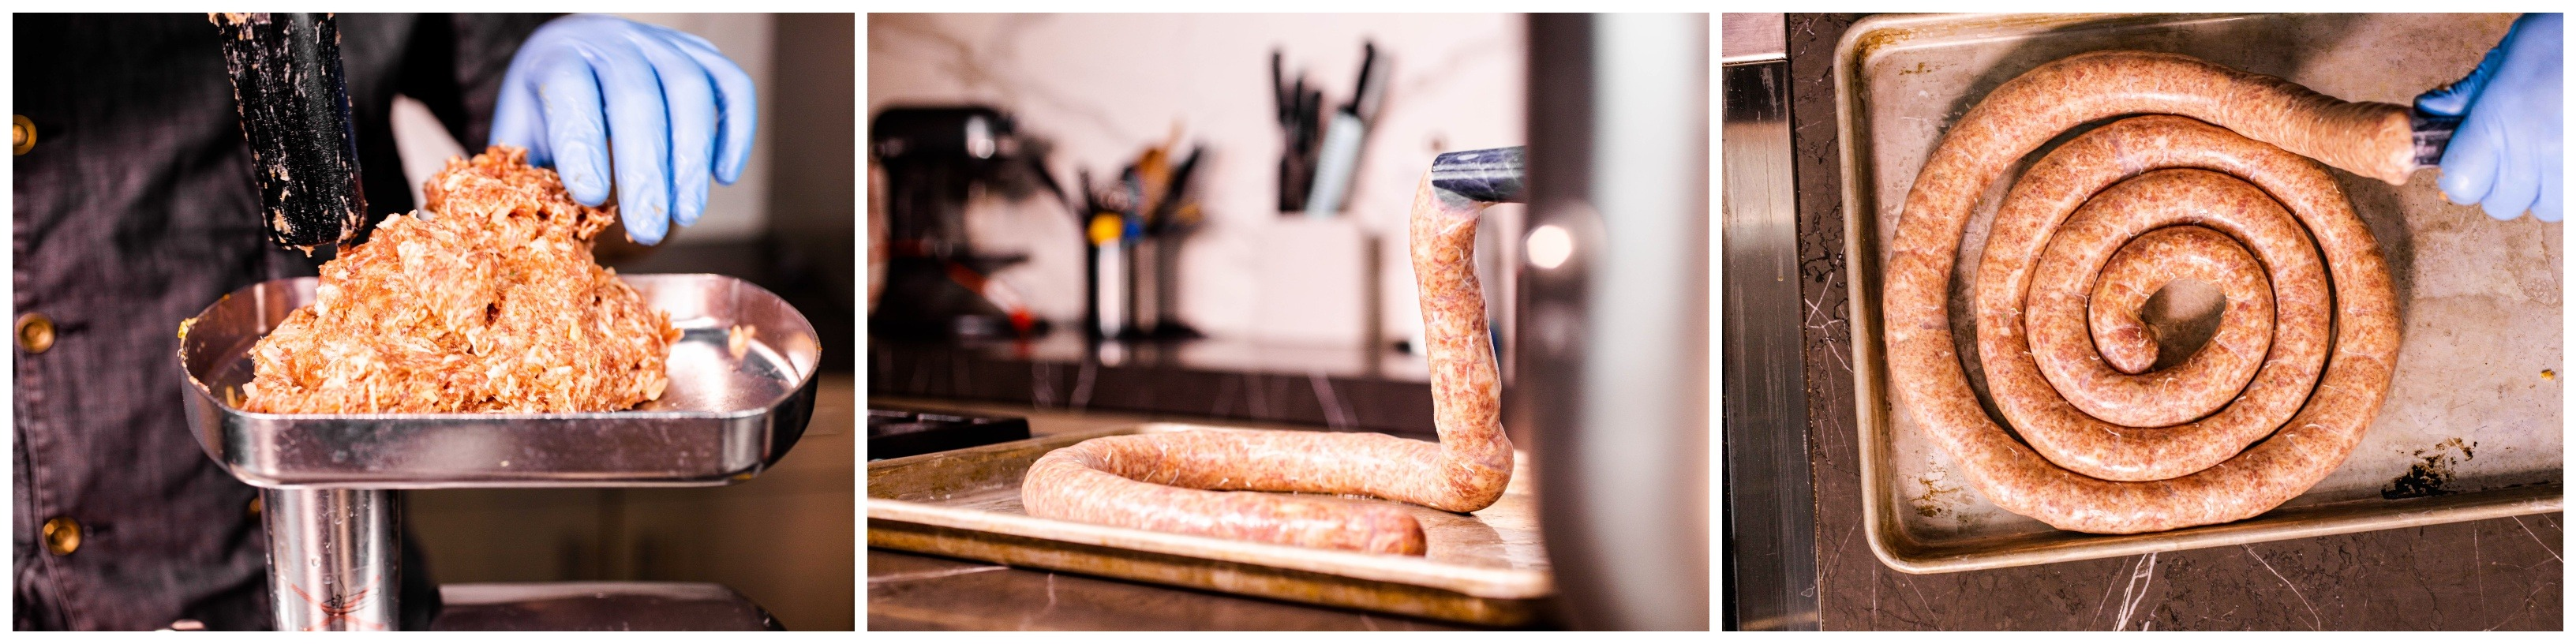 Smoked Andouille Sausage From Scratch—With Critical Temps